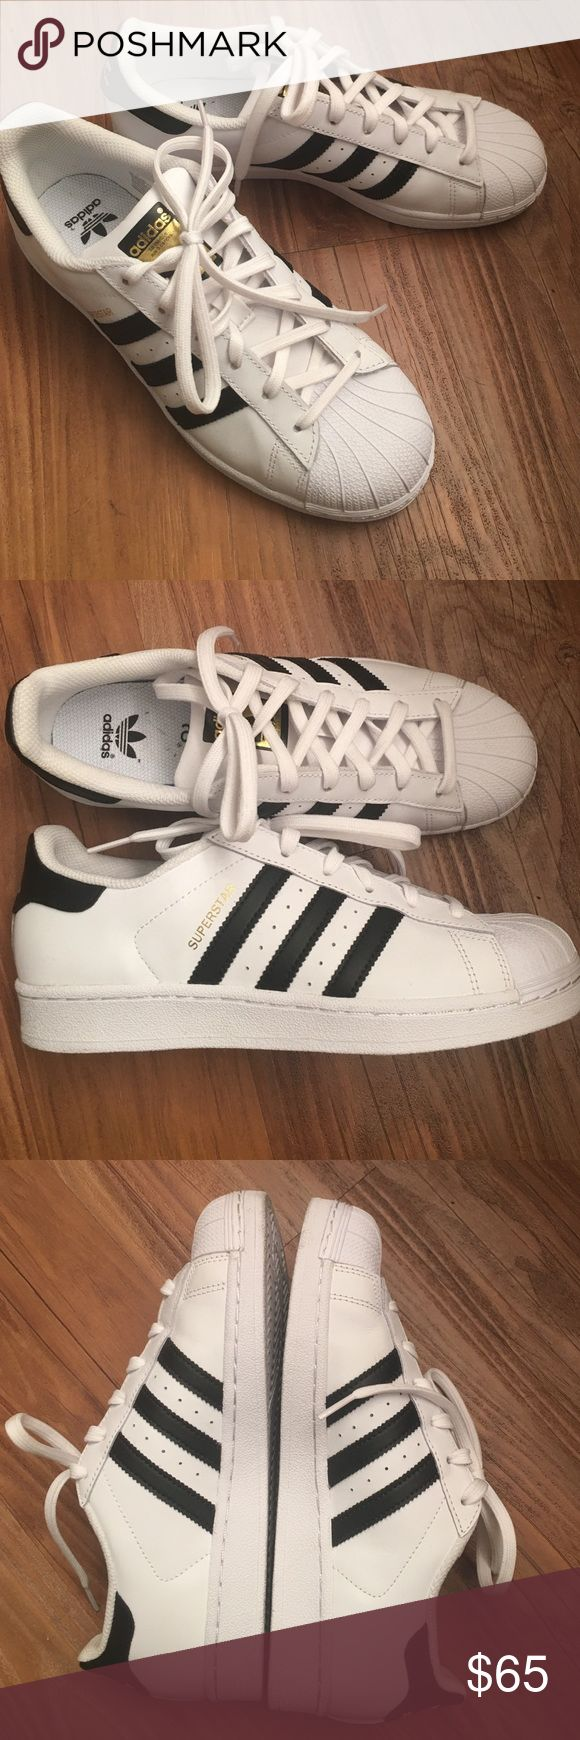 Adidas superstars Adidas superstars. Just like new. These are a size 6 in boys but I'm an 8 (women) and they fit perfectly. I only wore them twice. Not really my style. Price firm considering condition. No trades please. Adidas Shoes Sneakers